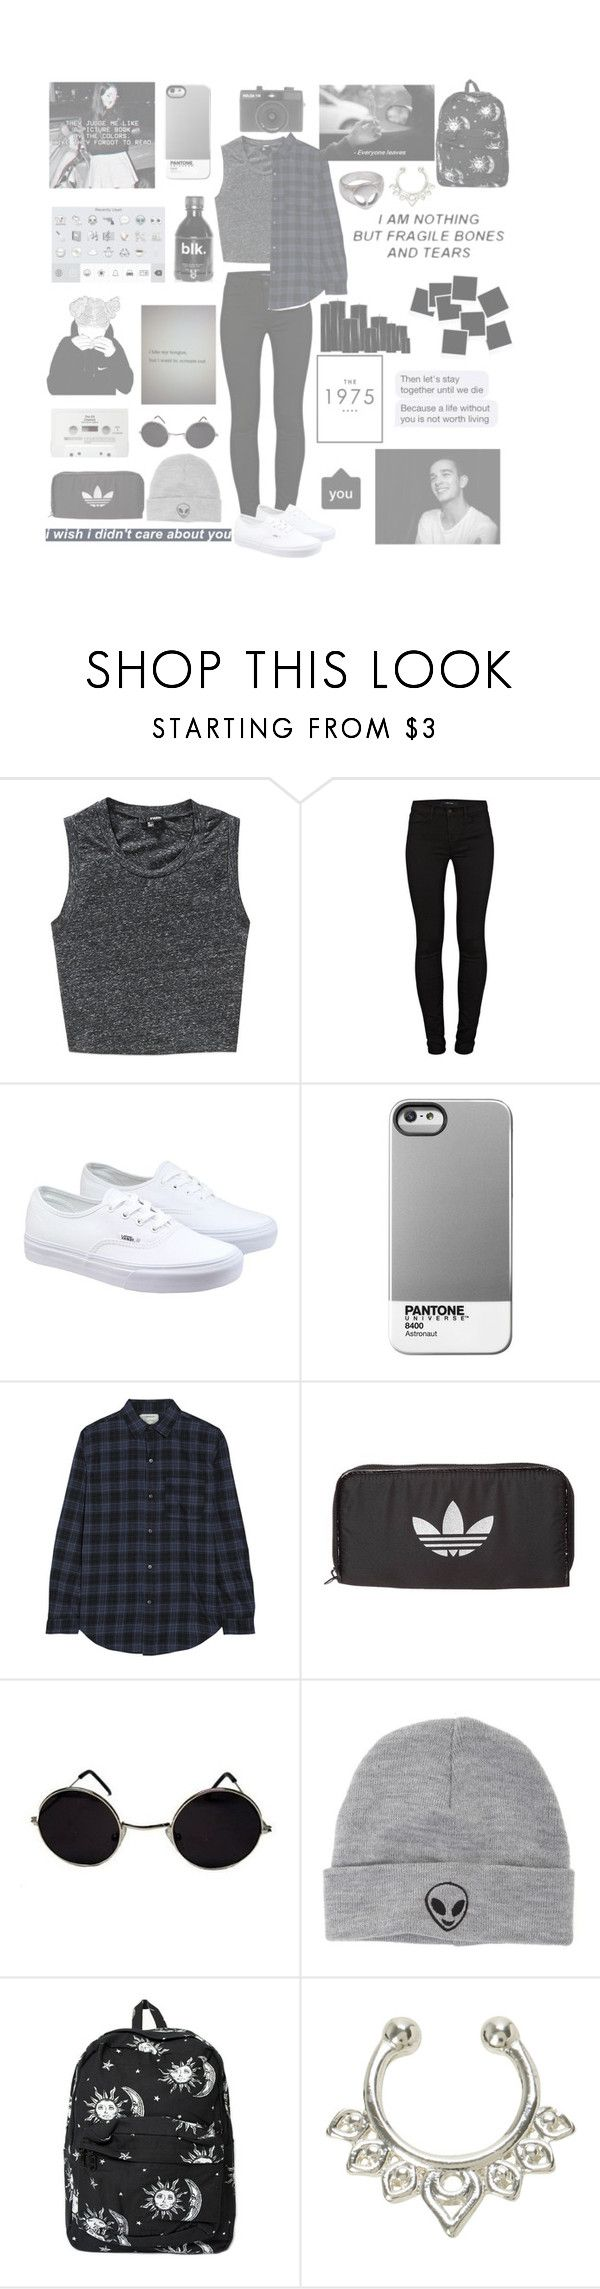 """'I hate you, I love you, I hate that I love you'"" by holographic-hemmings ❤ liked on Polyvore featuring Wilfred Free, J Brand, Vans, Current/Elliott, Holga, CASSETTE, adidas Originals, With Love From CA, Motel and women's clothing"